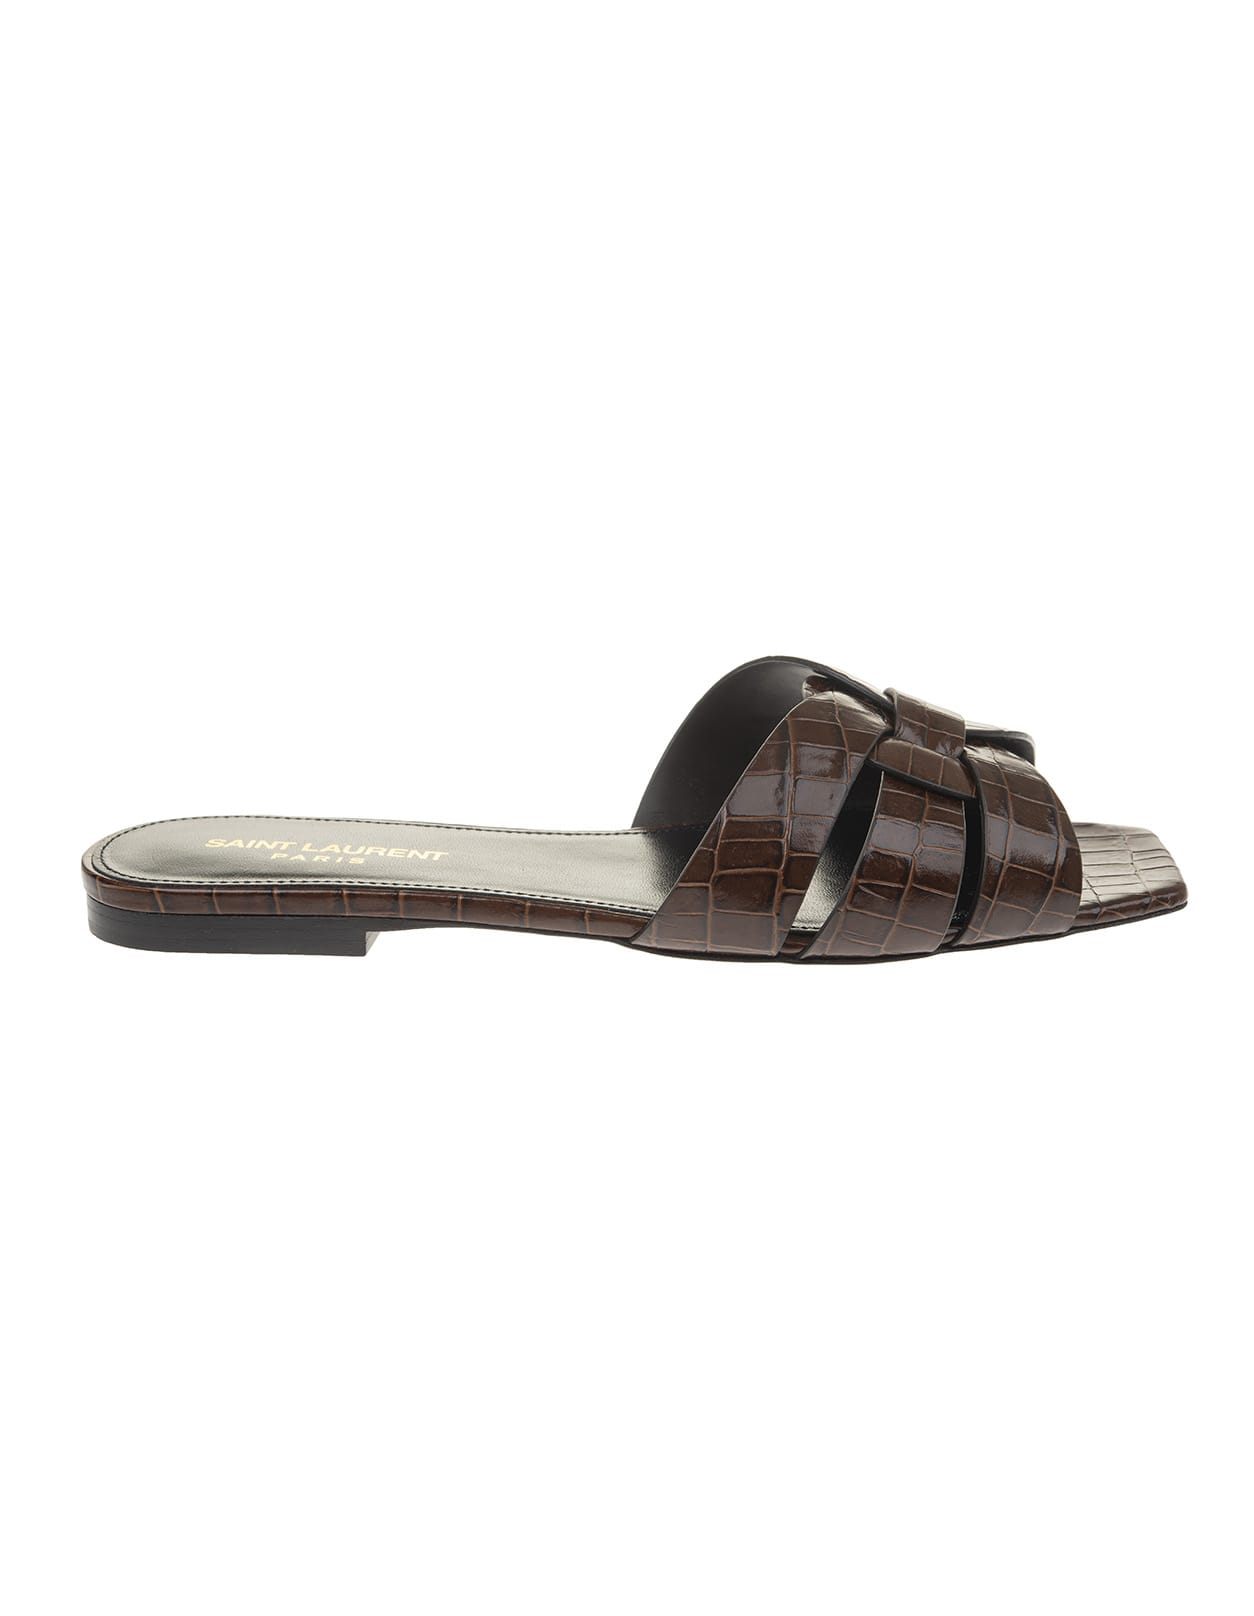 Tribute Mules In Brown Crocodile Glossy Leather